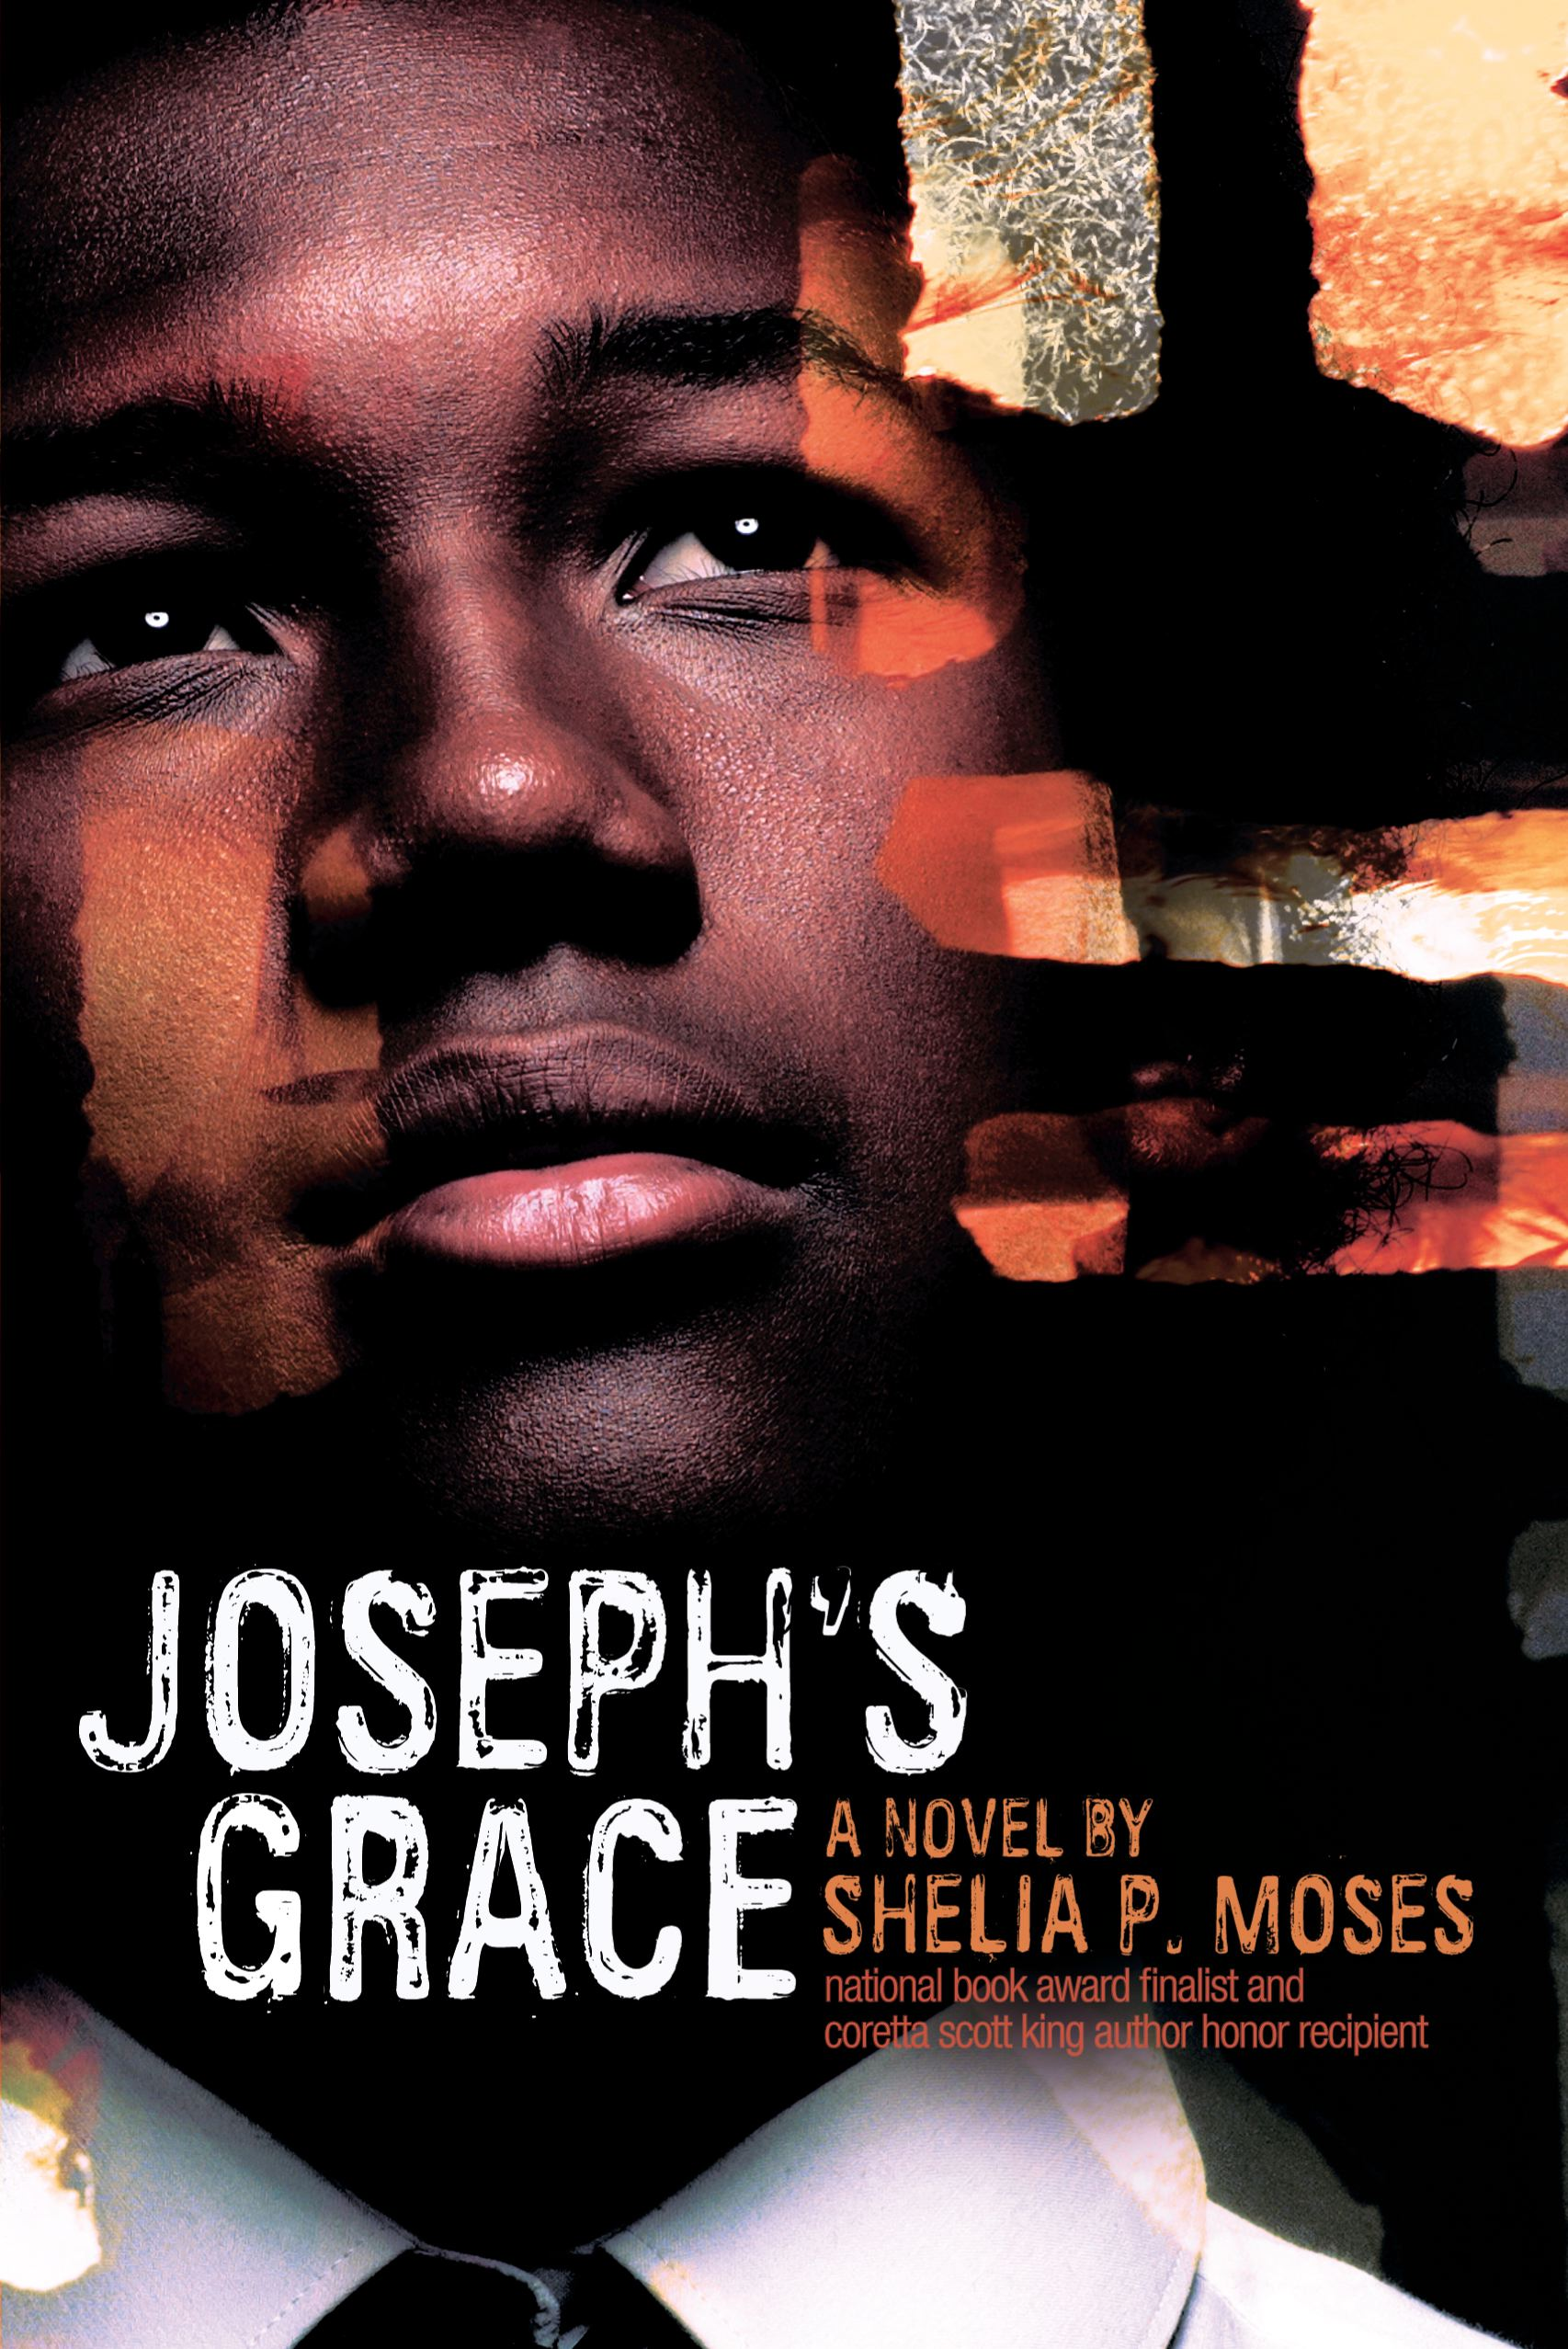 Josephs grace 9781416939429 hr